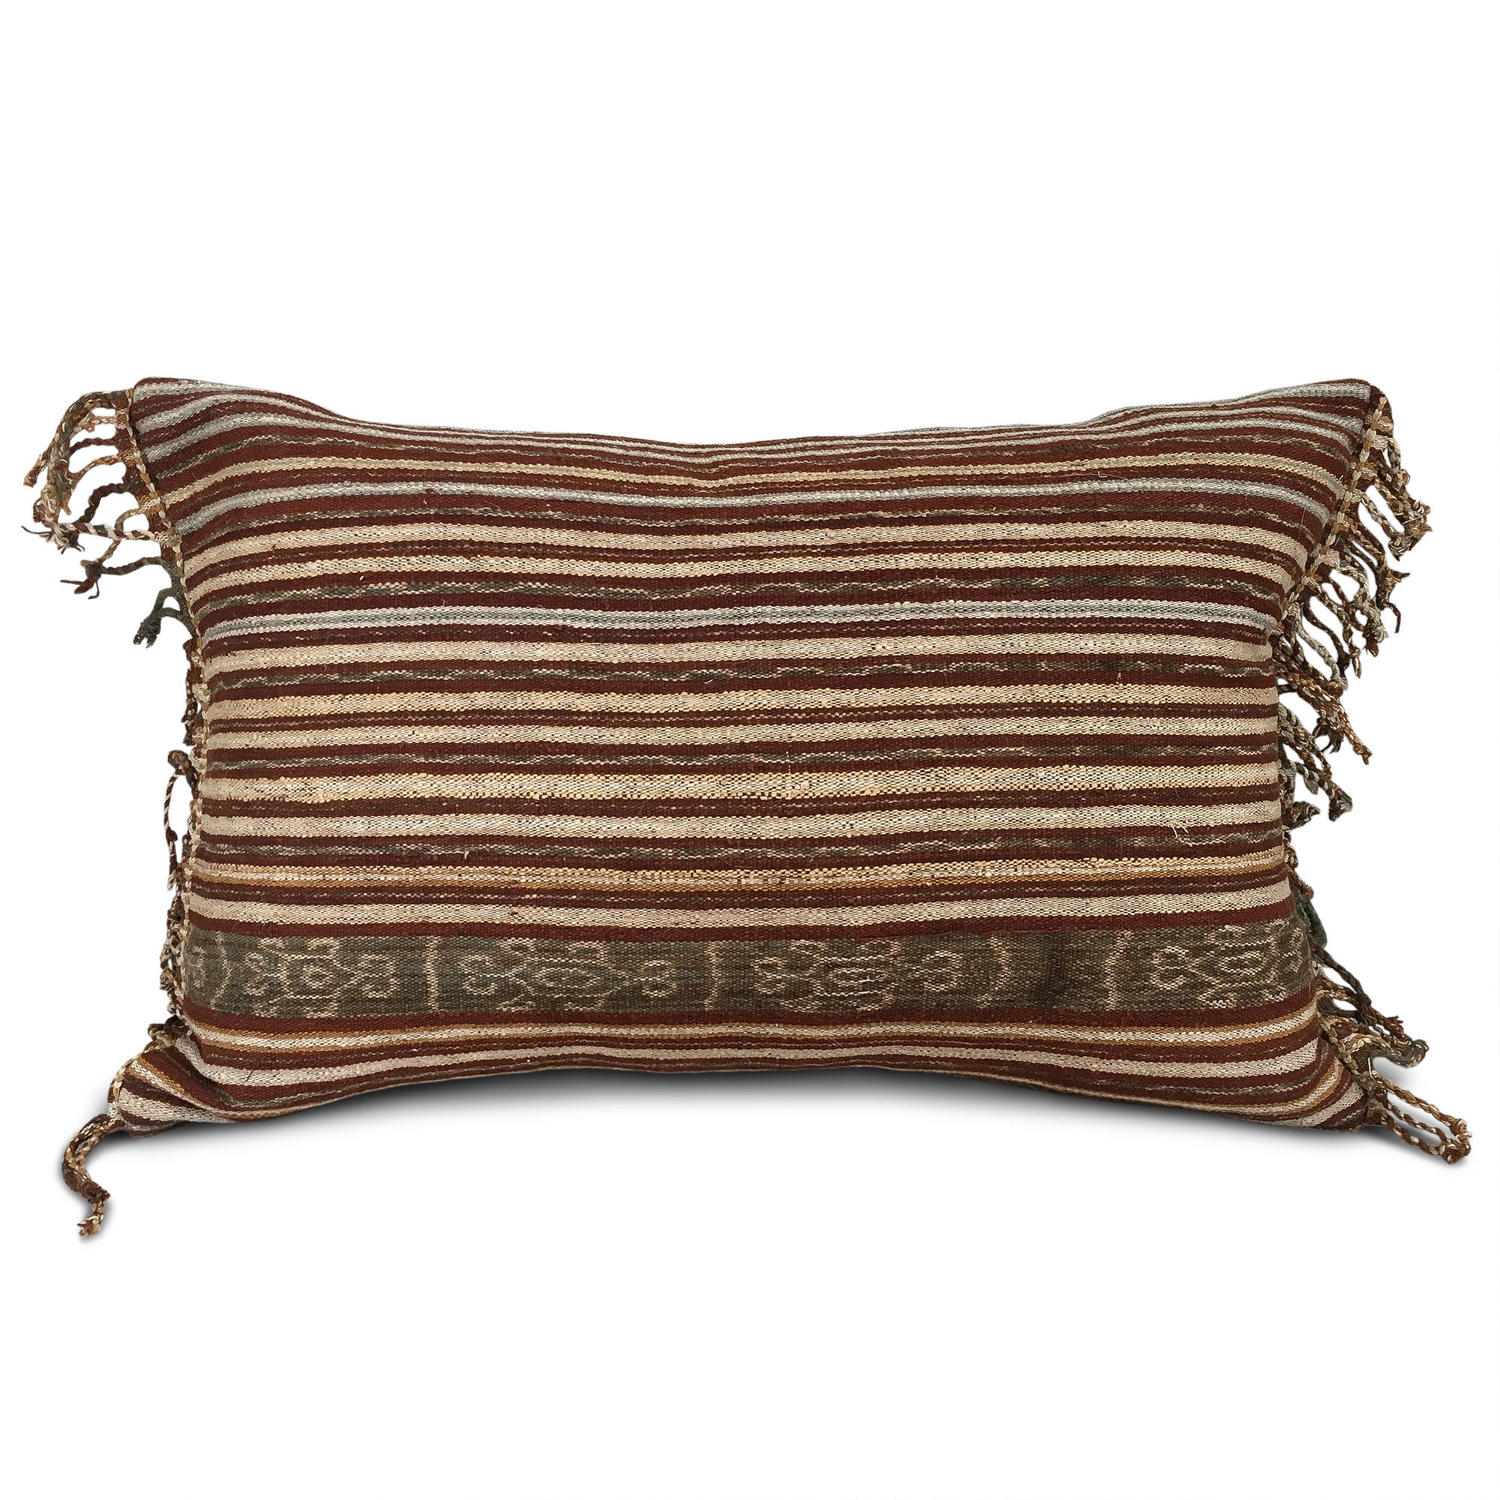 Ikat Cushions with Tassel Fringe Trim